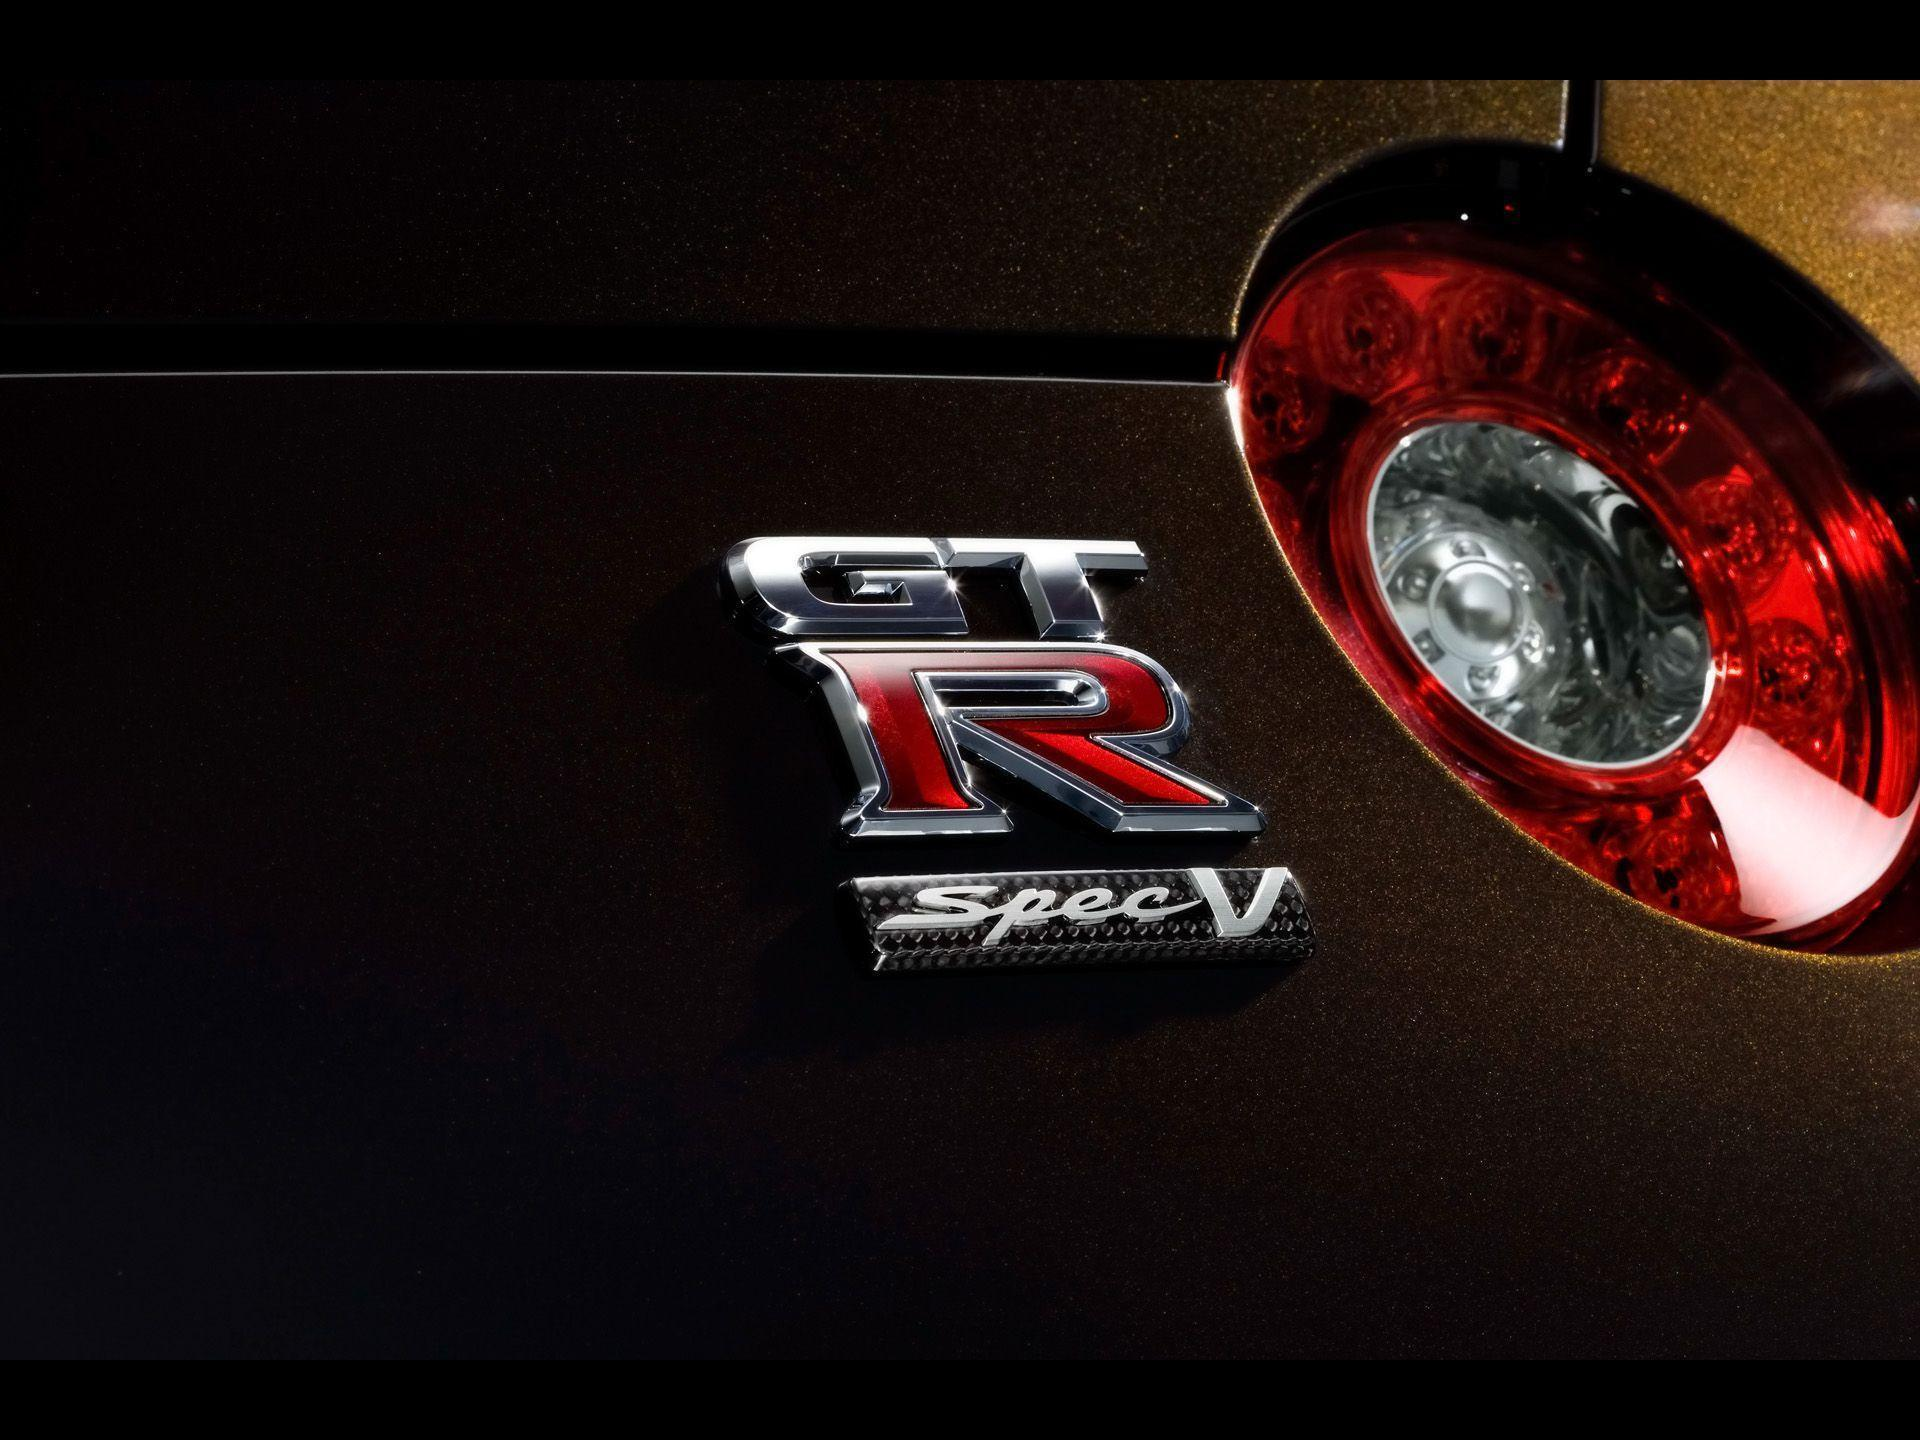 2009 Nissan GT-R SpecV - Badging - 1920x1440 - Wallpaper